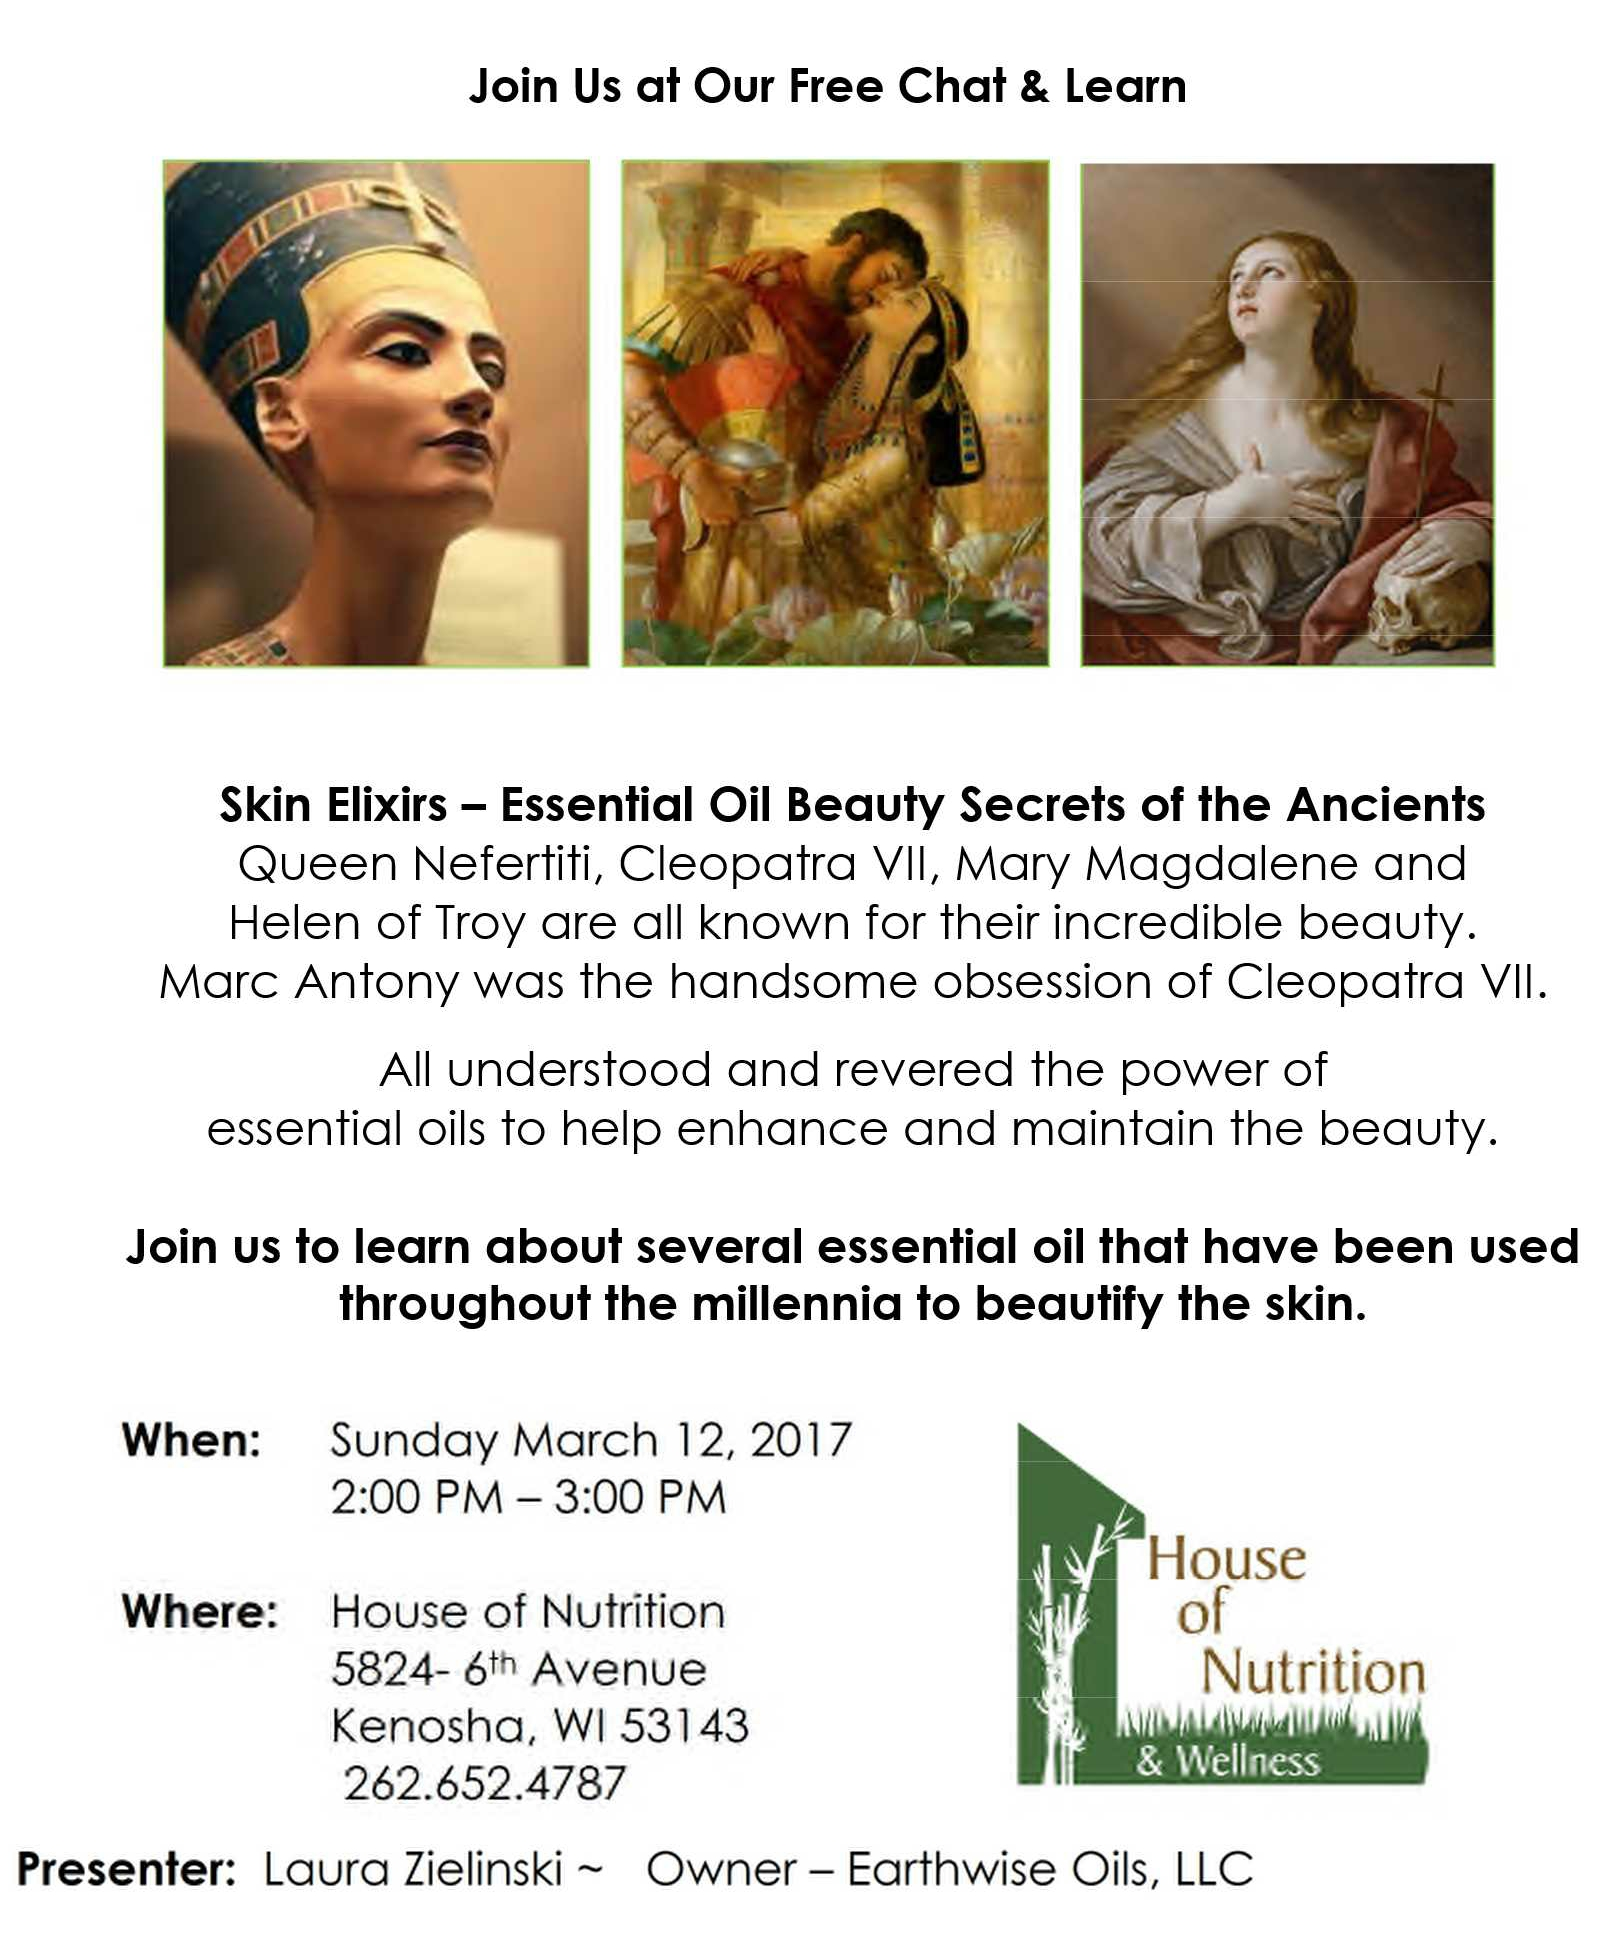 Free Chat & Learn @ House of Nutrition, Kenosha, WI - Skin Elixers of the Ancients